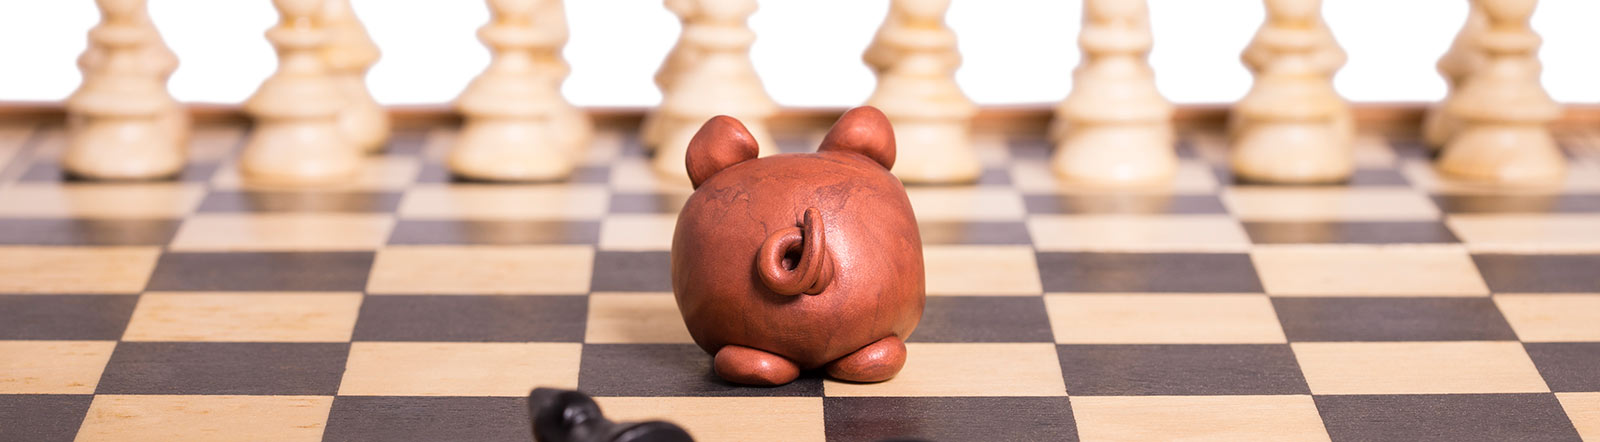 Piggy bank on chess board.